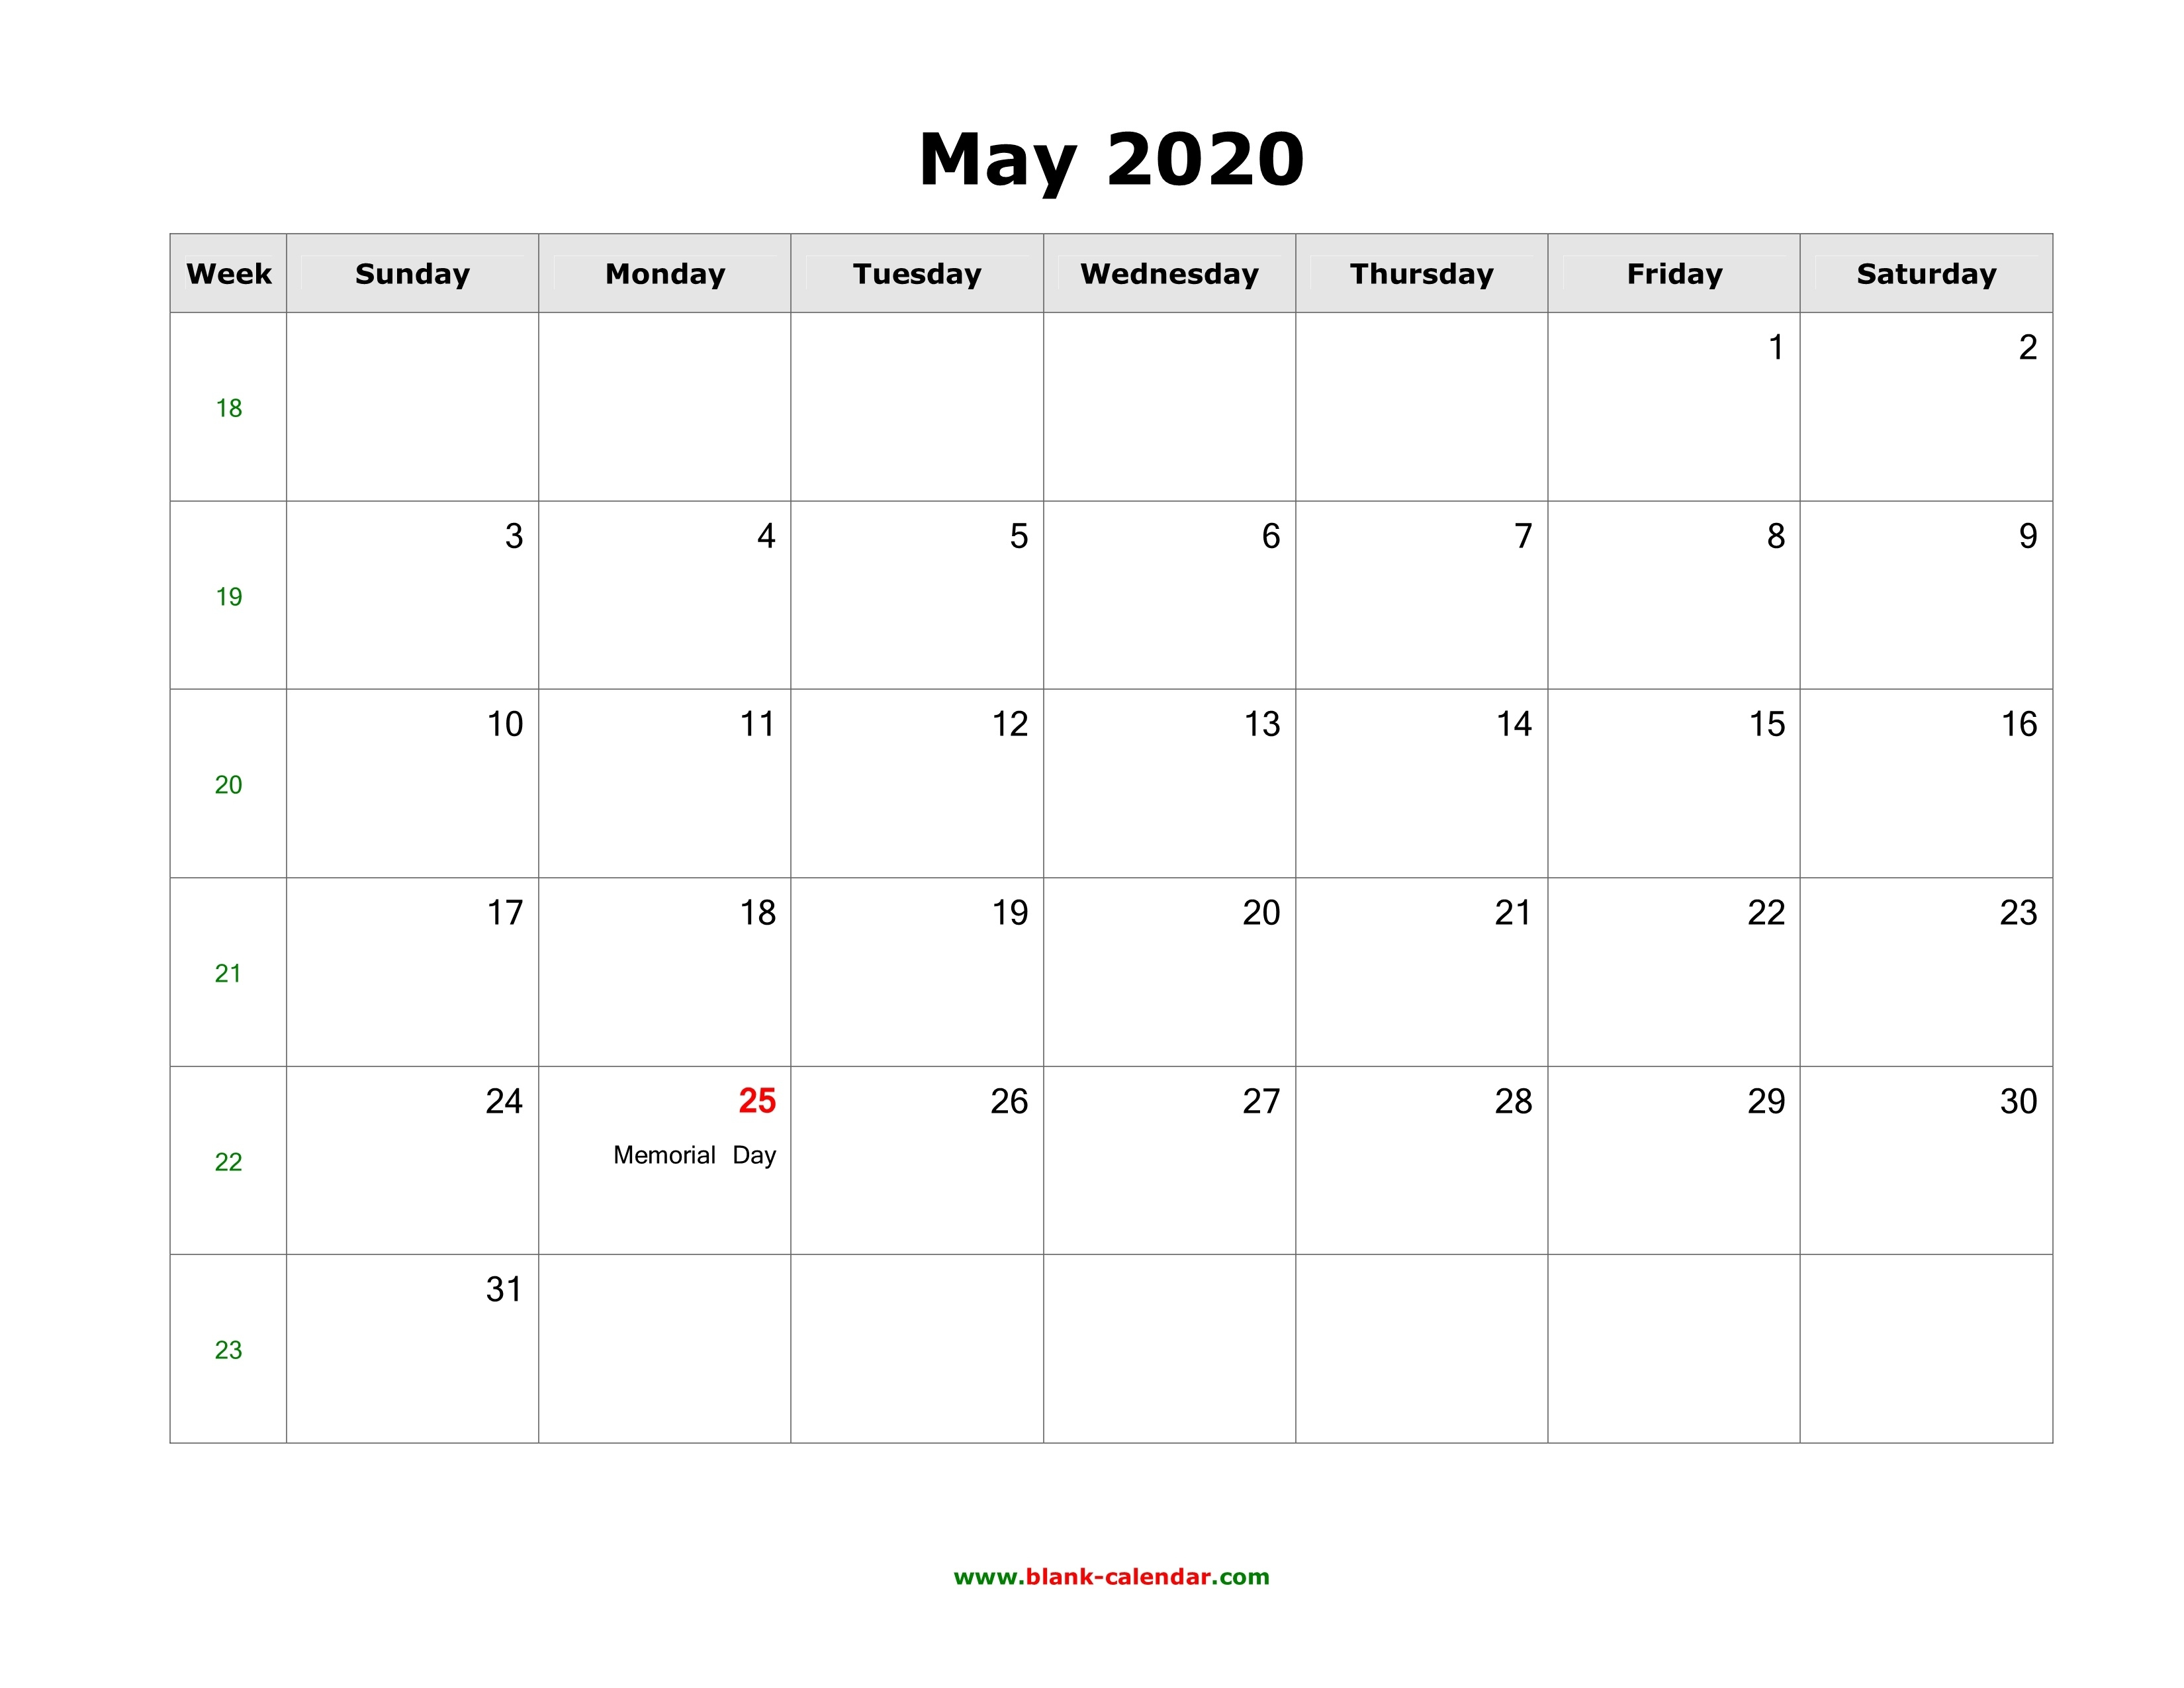 Download May 2020 Blank Calendar With Us Holidays (Horizontal)_Blank Calendar August 2020-May 2020